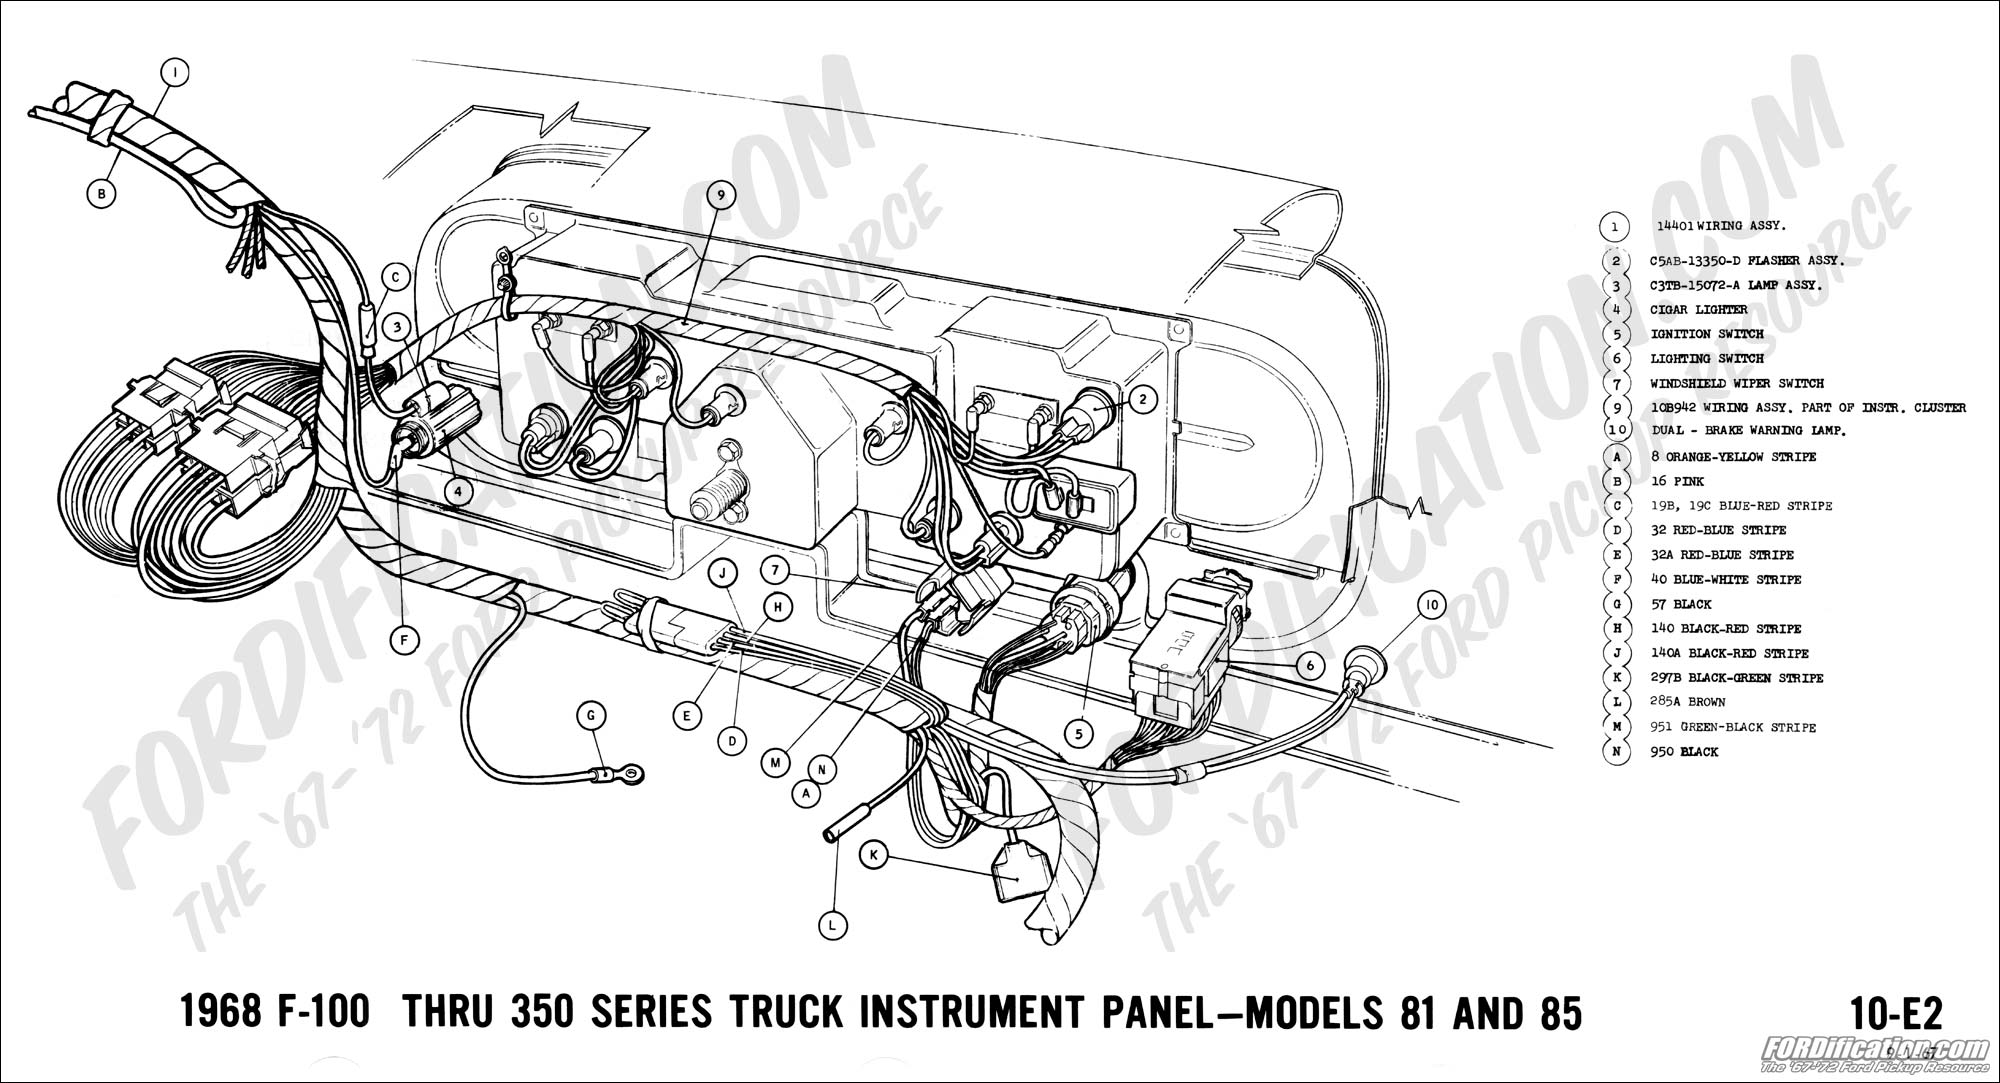 68 04 ford truck technical drawings and schematics section h wiring Ford Electrical Wiring Diagrams at virtualis.co